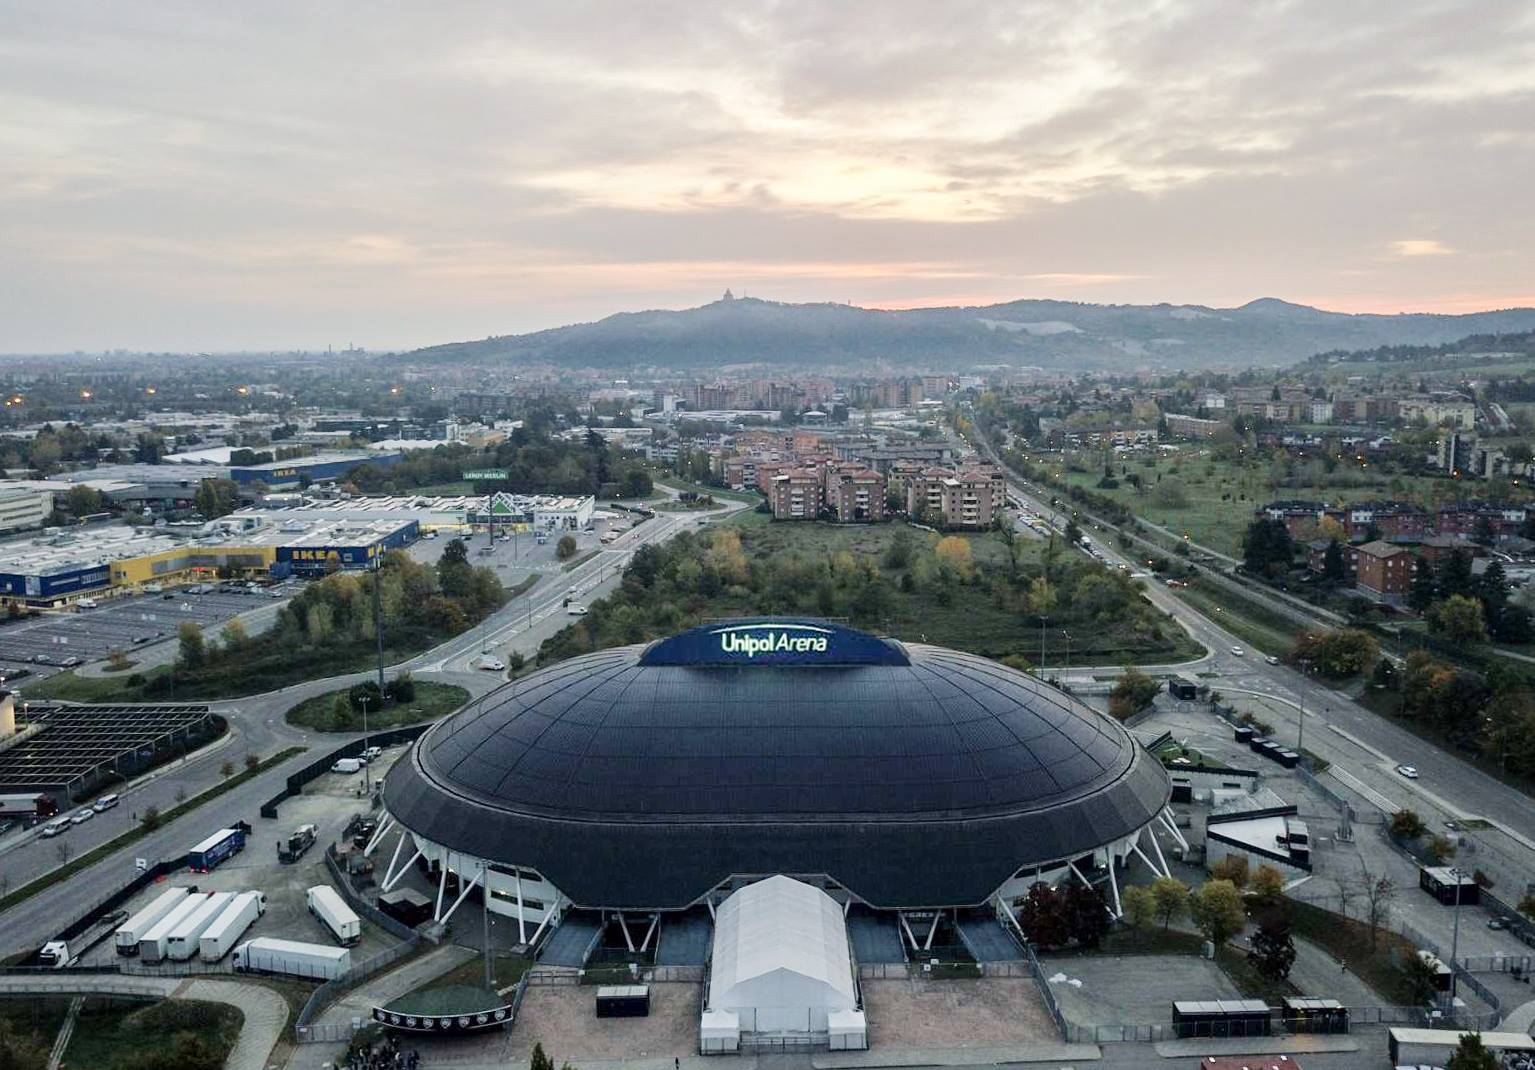 The splendid view from above of the Unipol Arena and the city of Bologna